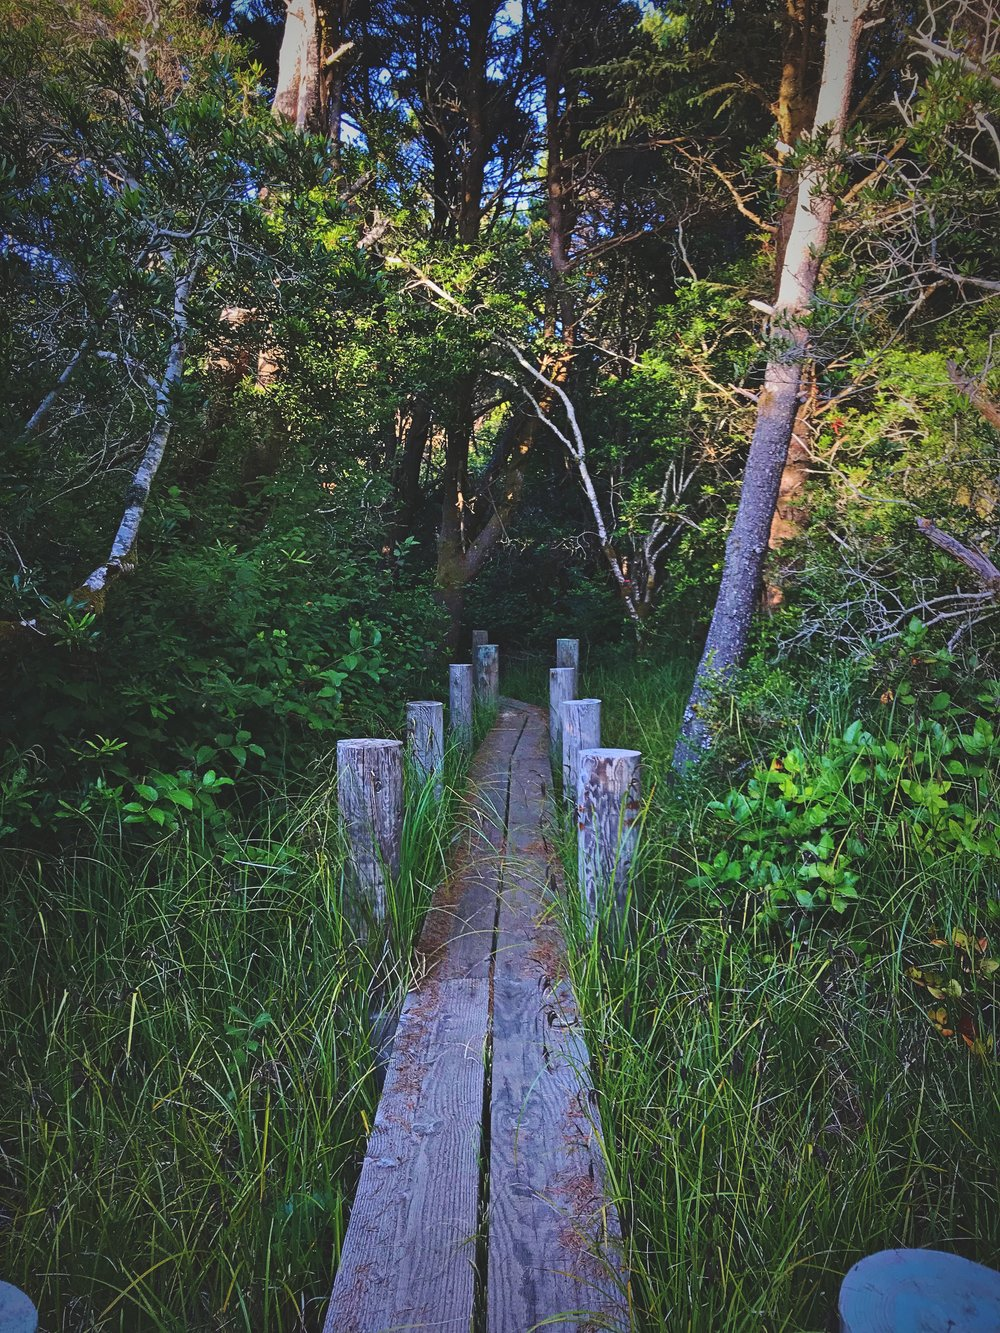 These wooden boardwalks make this part of the trail even more charming.